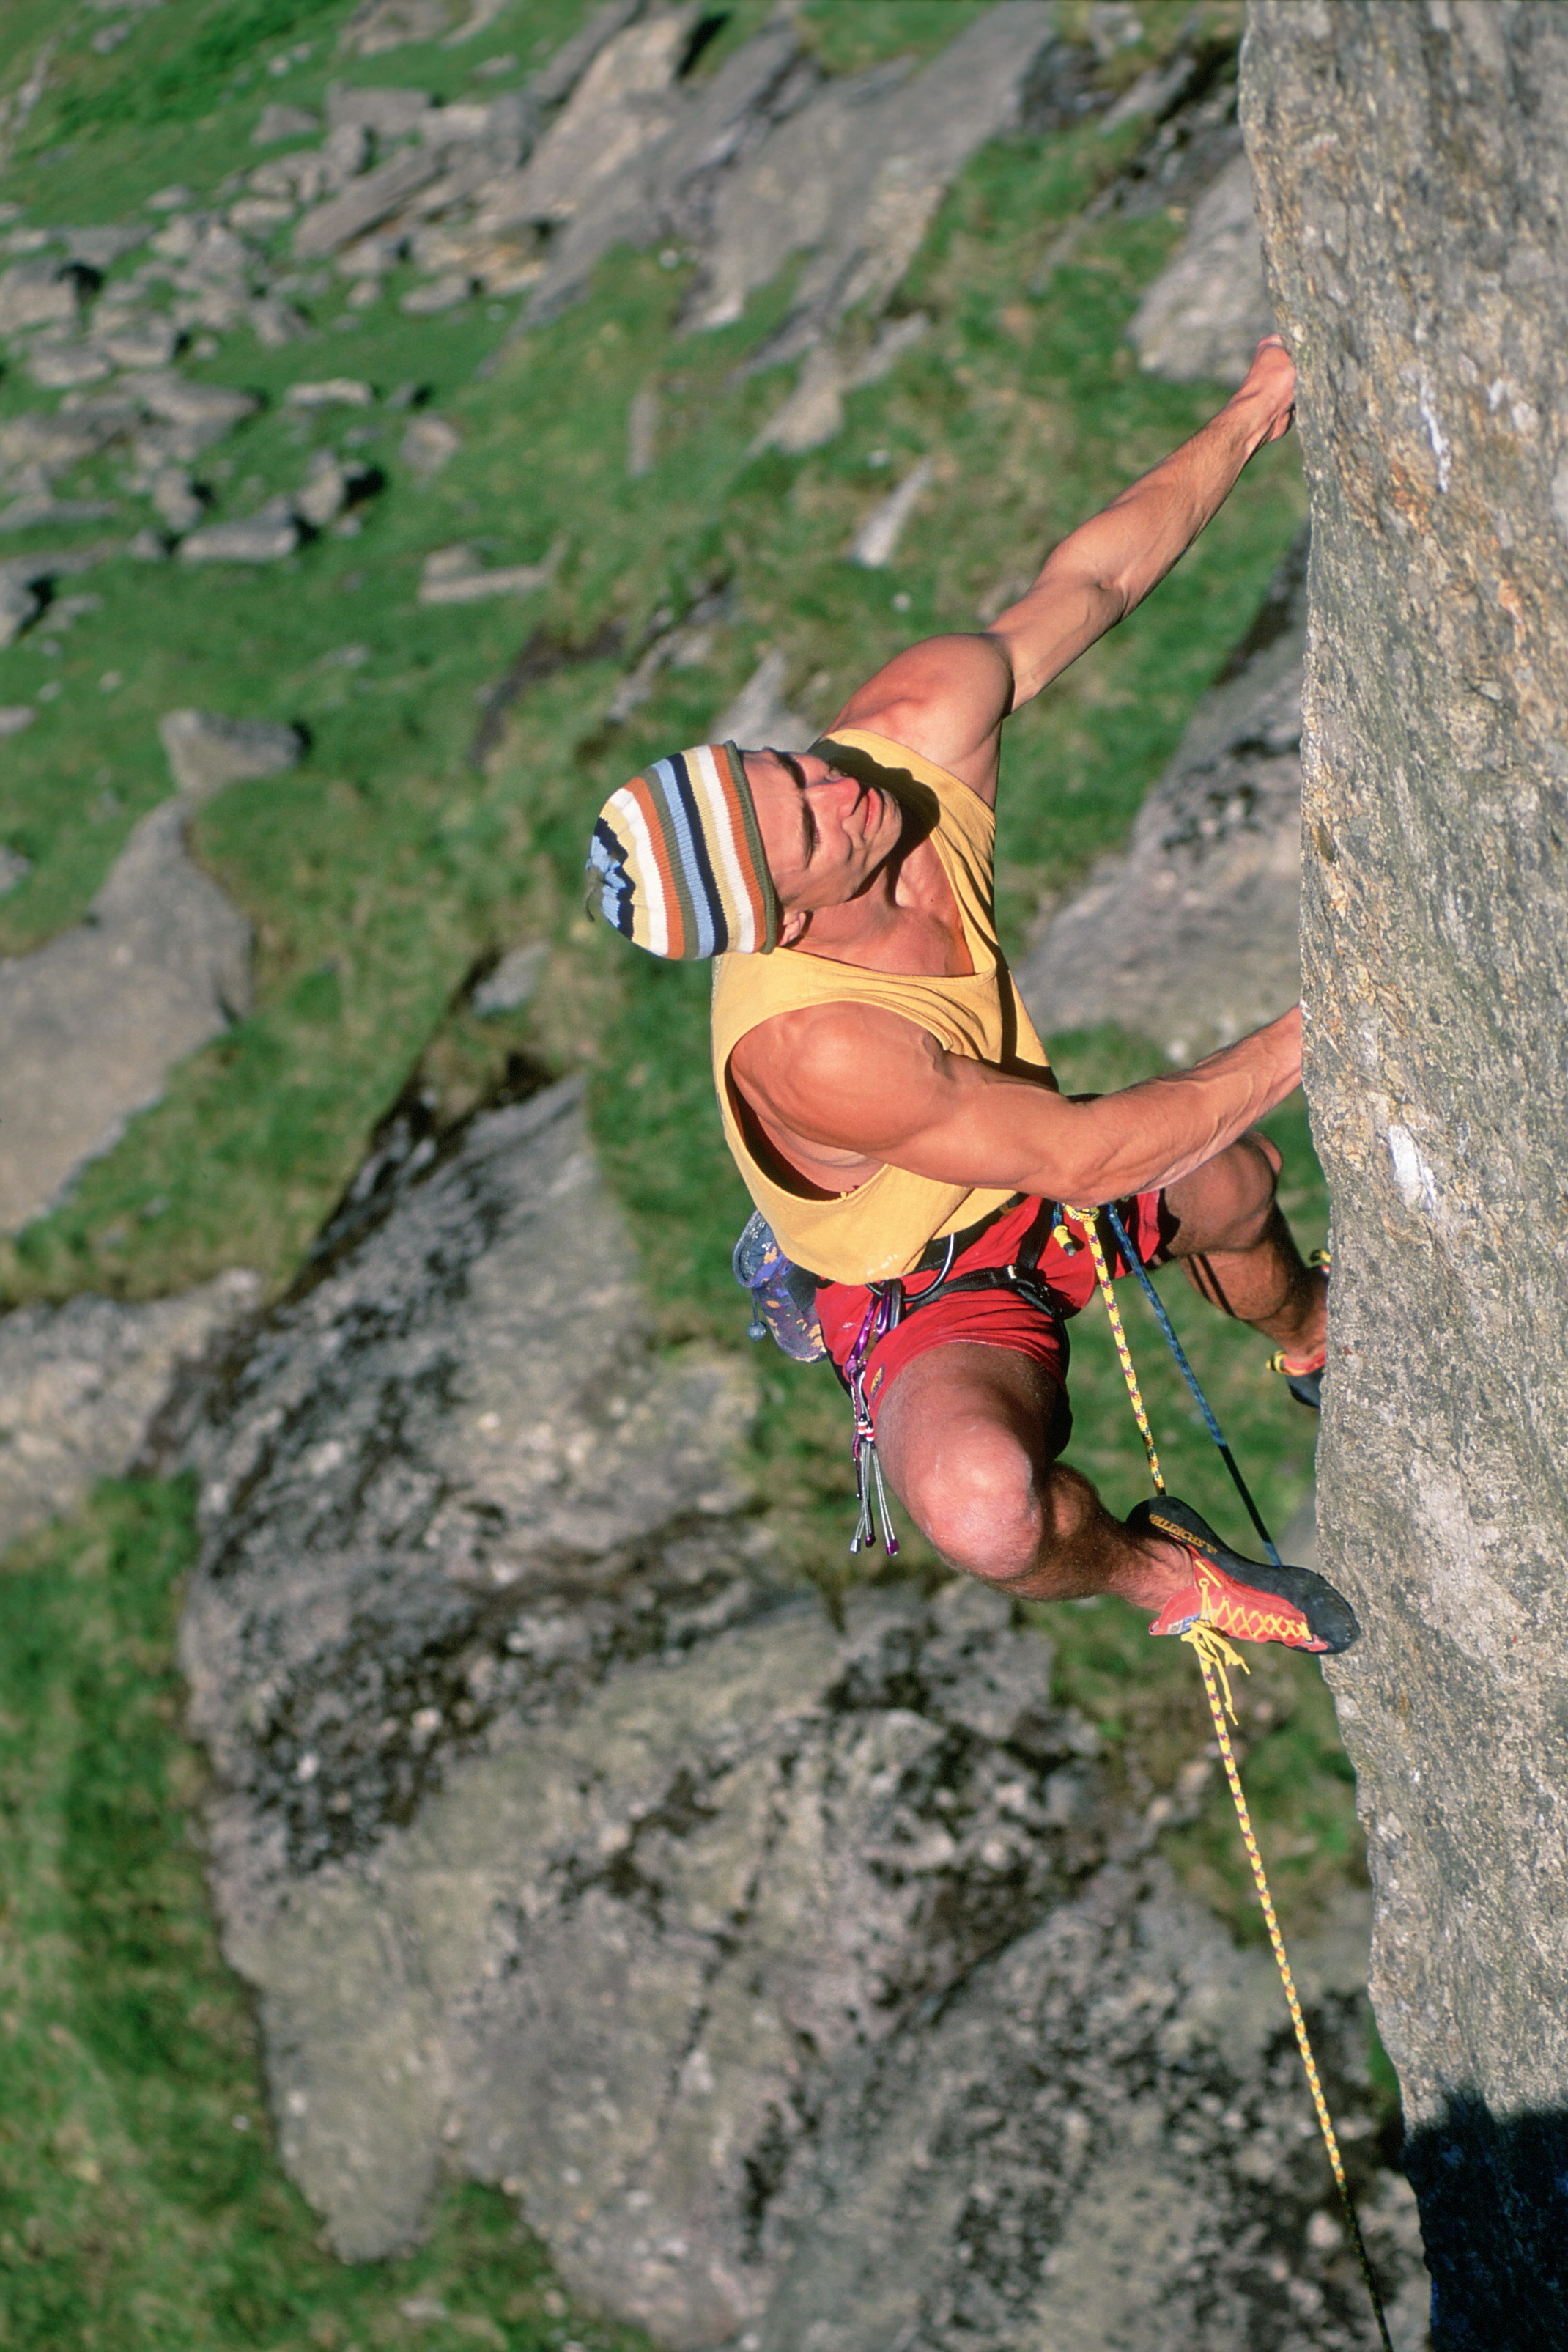 Gravediggers E8 6c, LLanberis, UK. First ascent in 1997. Photo: Ray Wood